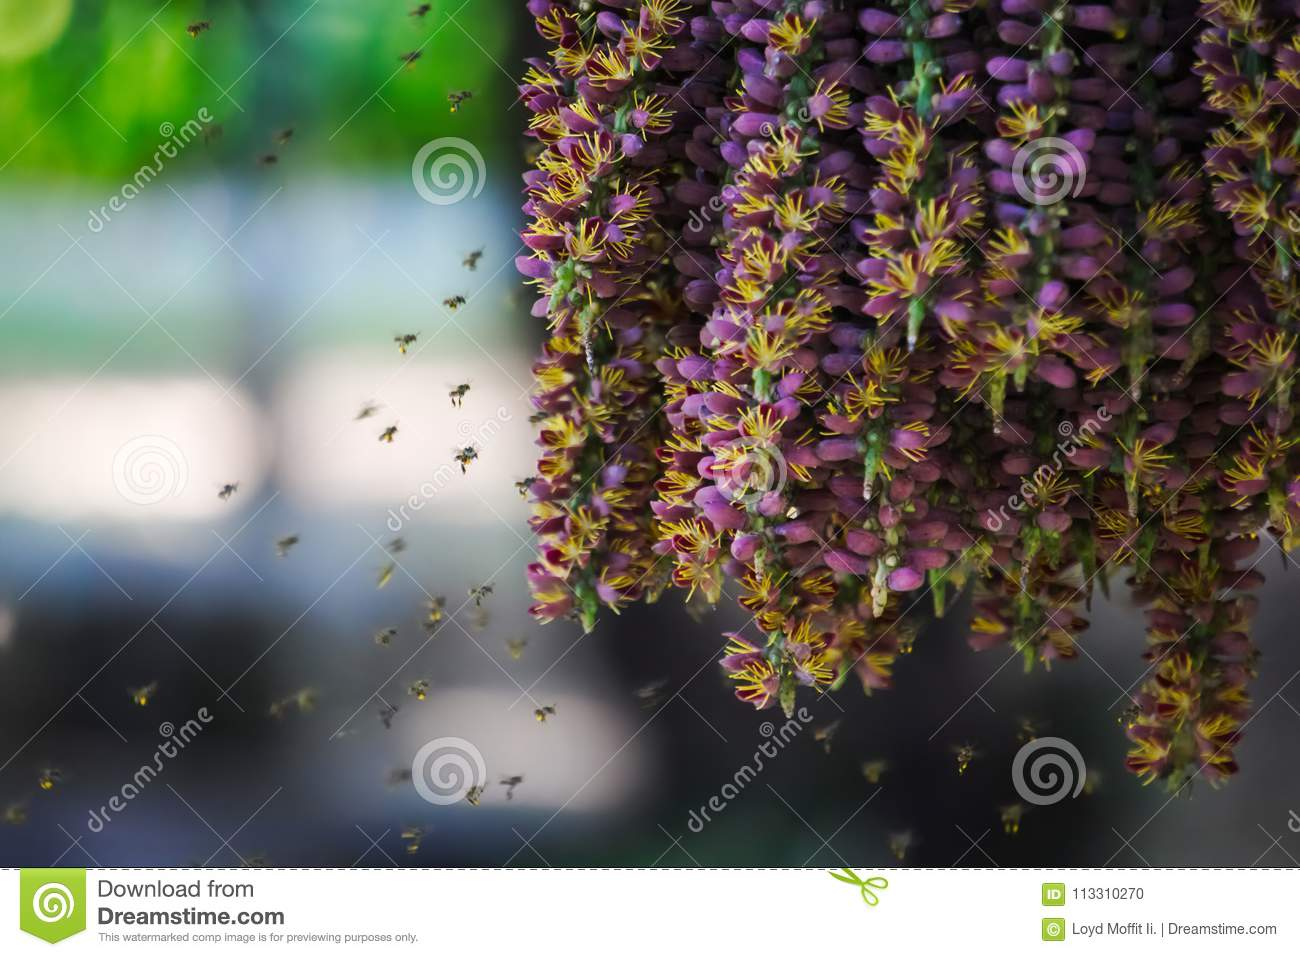 Unusually beautiful scene of swarming bees enjoying the pollen of a hanging group of purple flowers from a palm plant in a lush Th